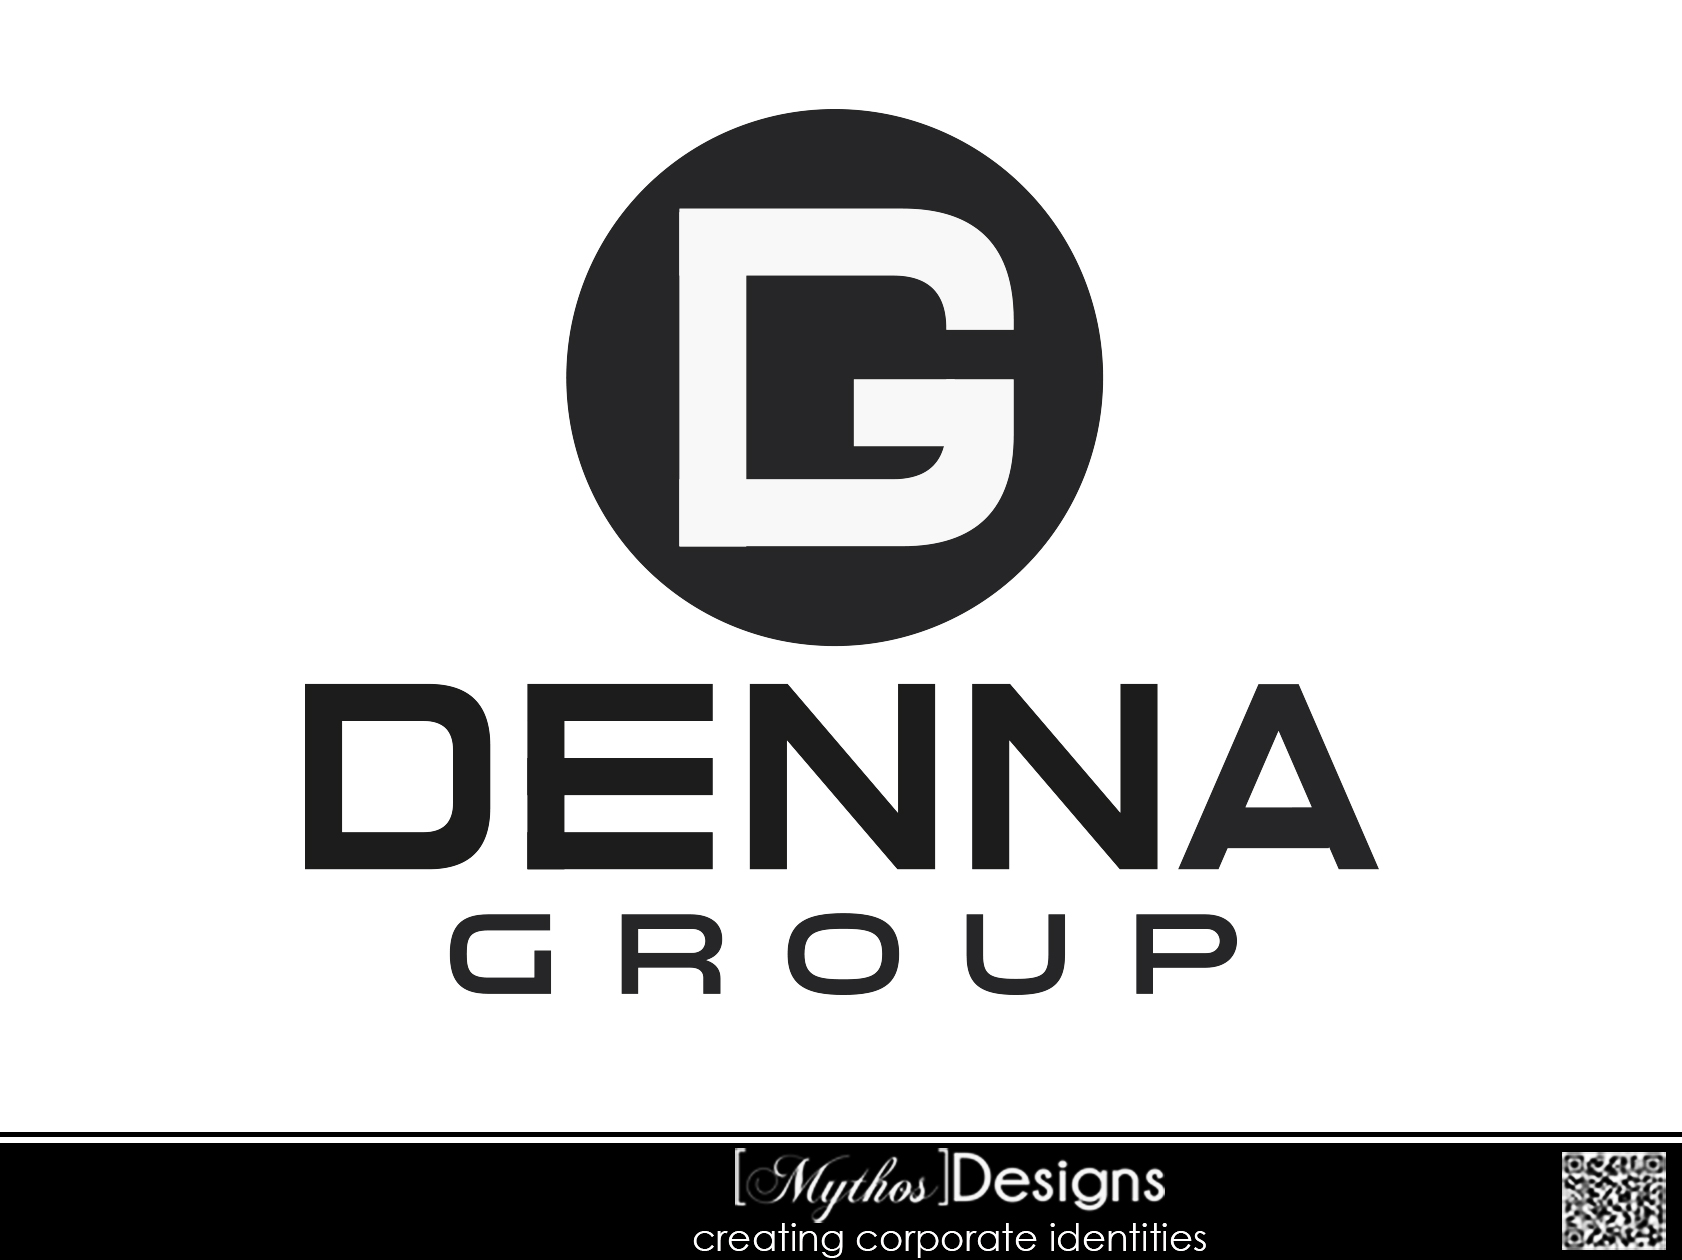 Logo Design by Mythos Designs - Entry No. 219 in the Logo Design Contest Denna Group Logo Design.